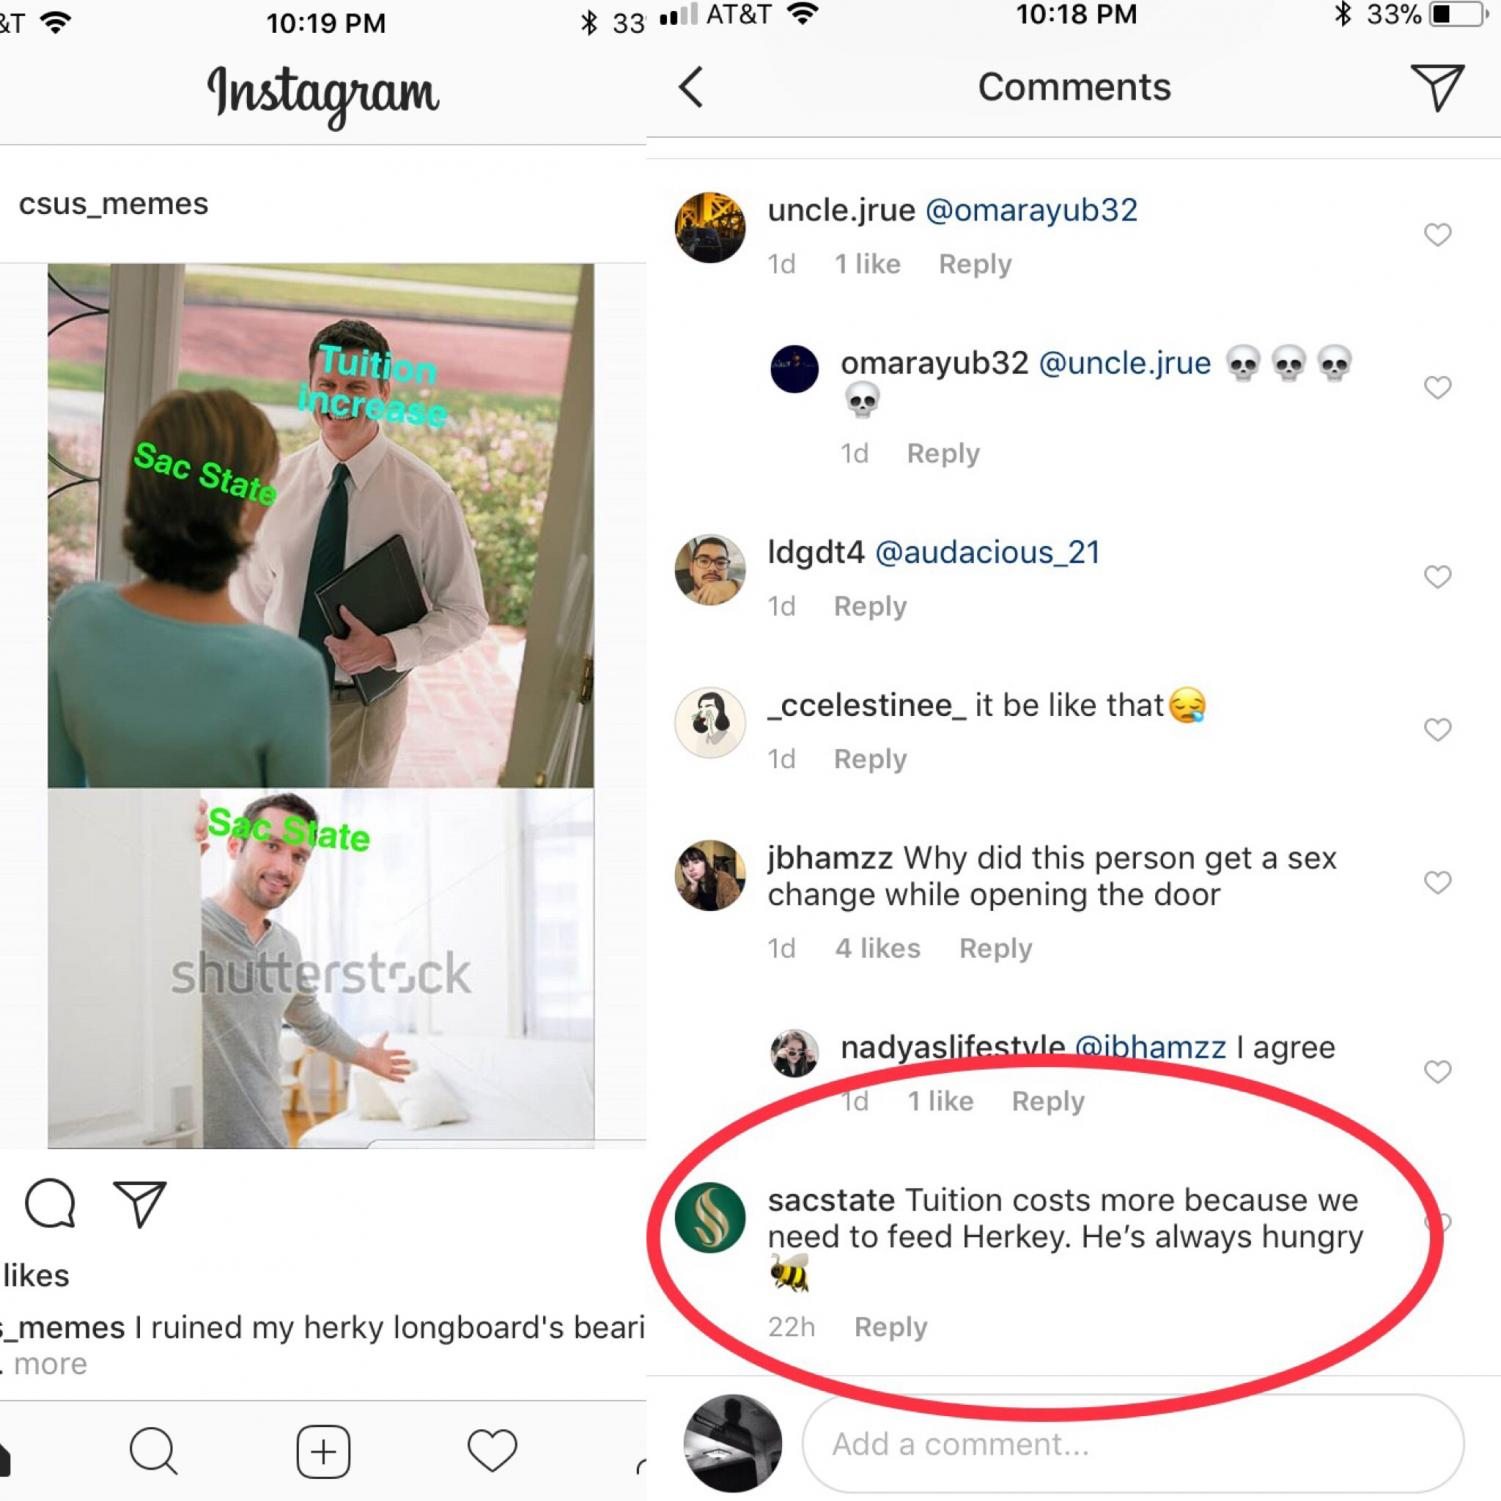 'Inappropriate' Instagram comment by Sac State account removed